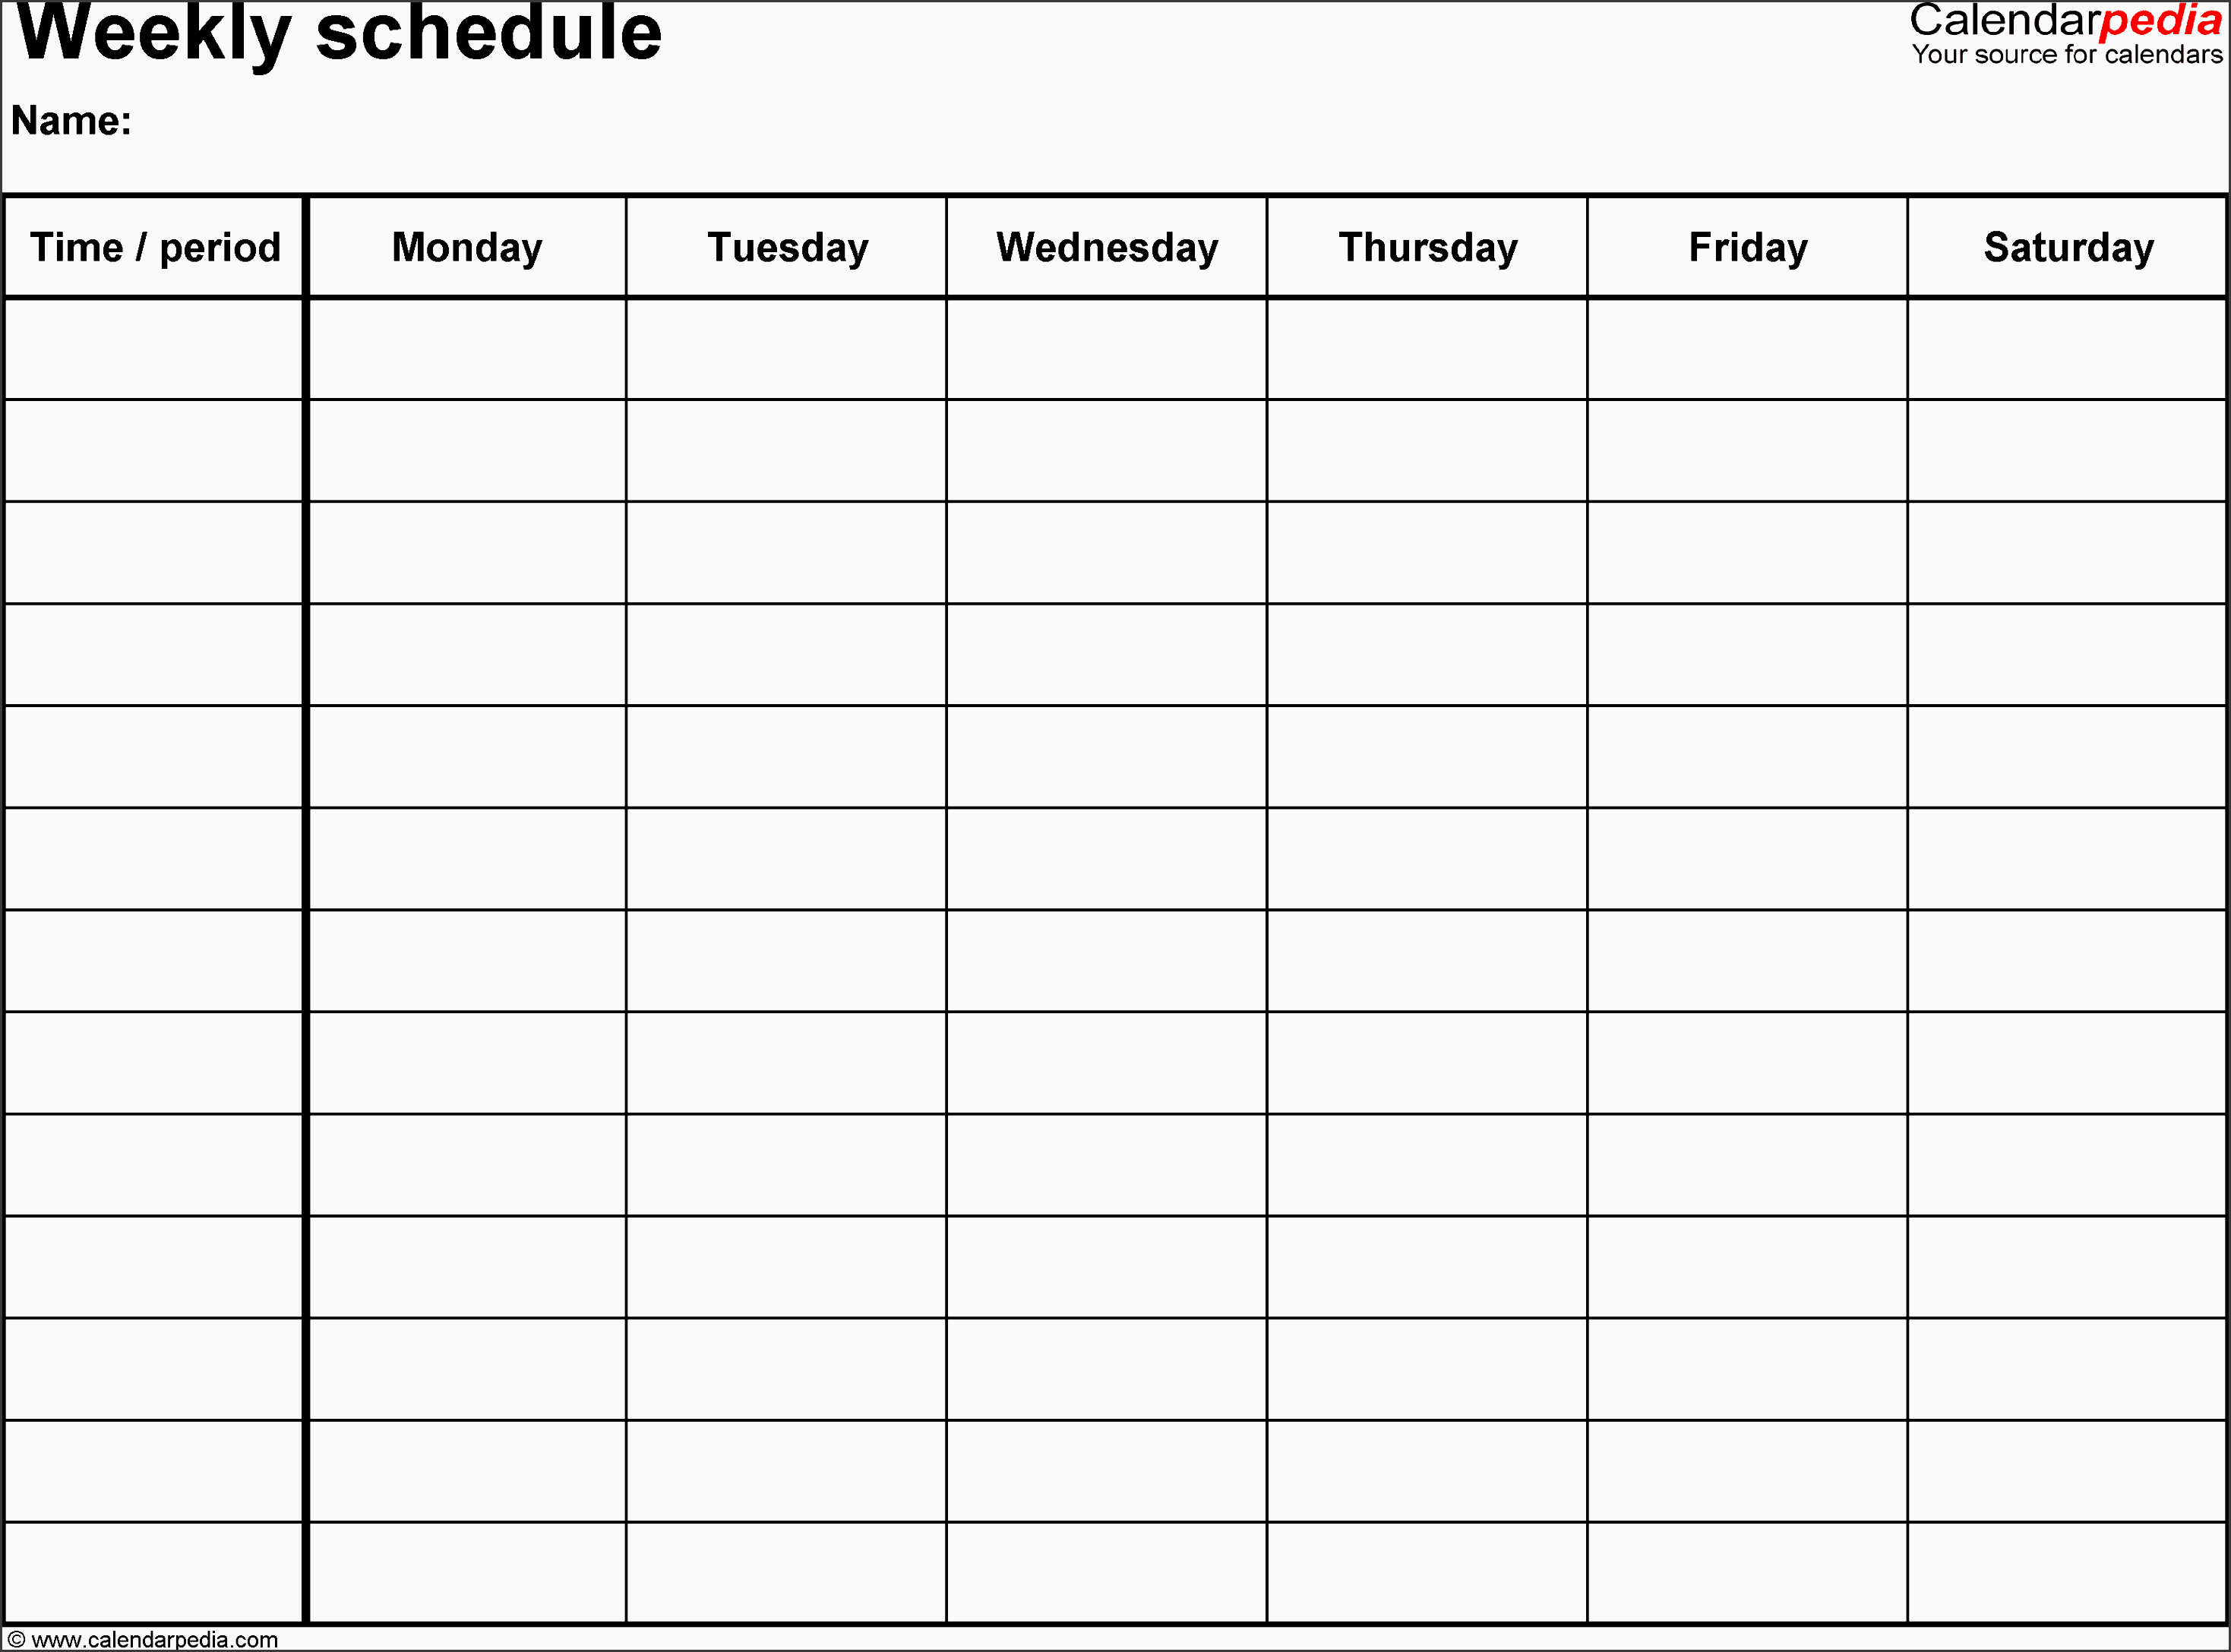 weekly schedule template for word version 8 landscape 1 page monday to saturday